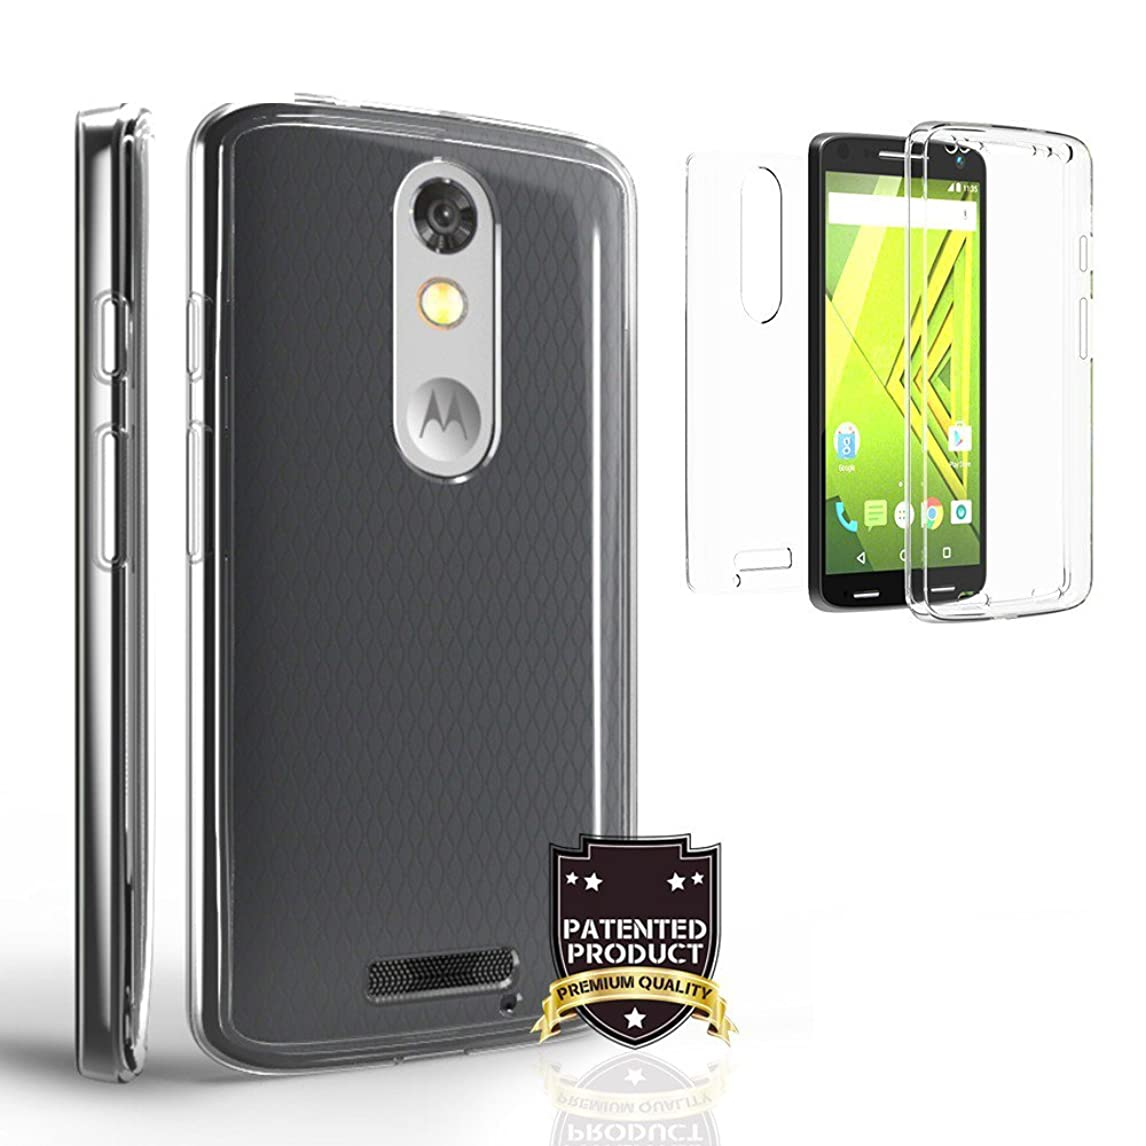 Tri Max Suitable for Droid Turbo 2 Clear Case, XT1585 [Edge Protector][Ultra Slim][Shock Absorbing] Durable 360o[Full Body] Protection [Crystal Clear] Flexible Gel Case (2 Piece Front and Back) skbs7587357960